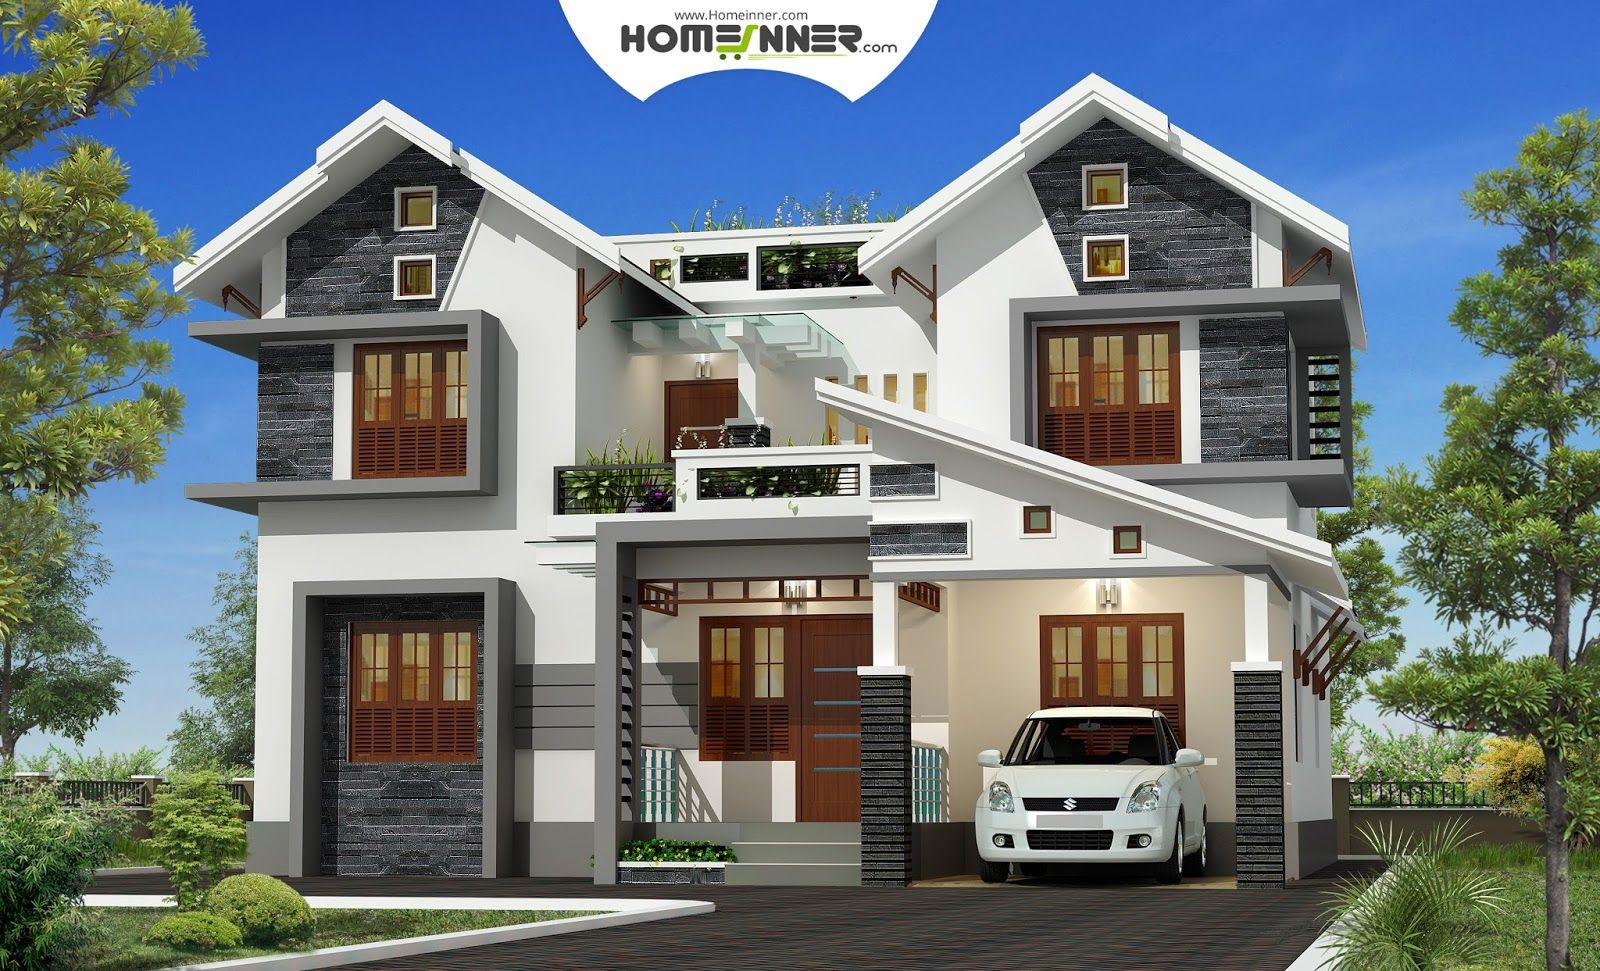 Kerala villa designs home design for Home design 3d 5 0 crack